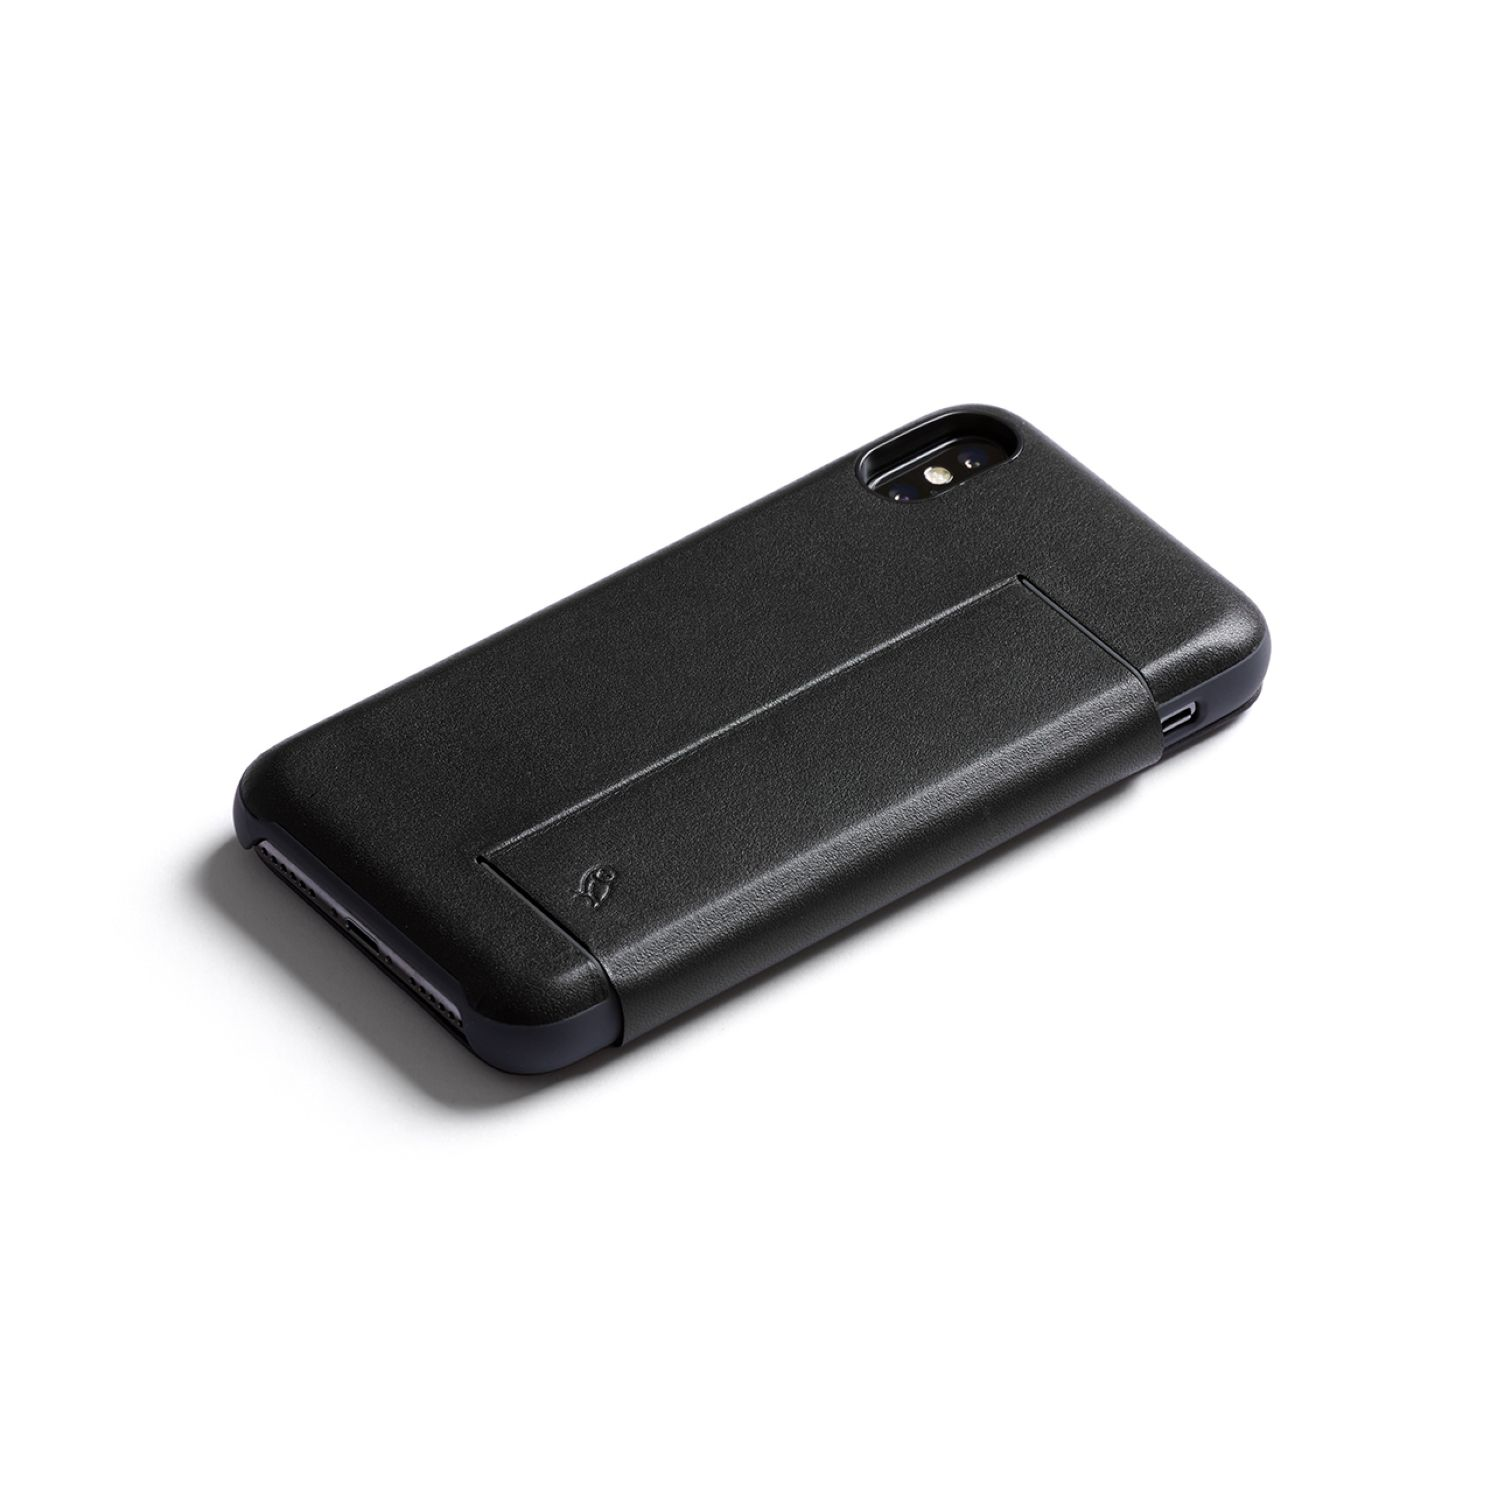 factory price 338b0 cee24 Bellroy Phone Wallet iPhone X - Black